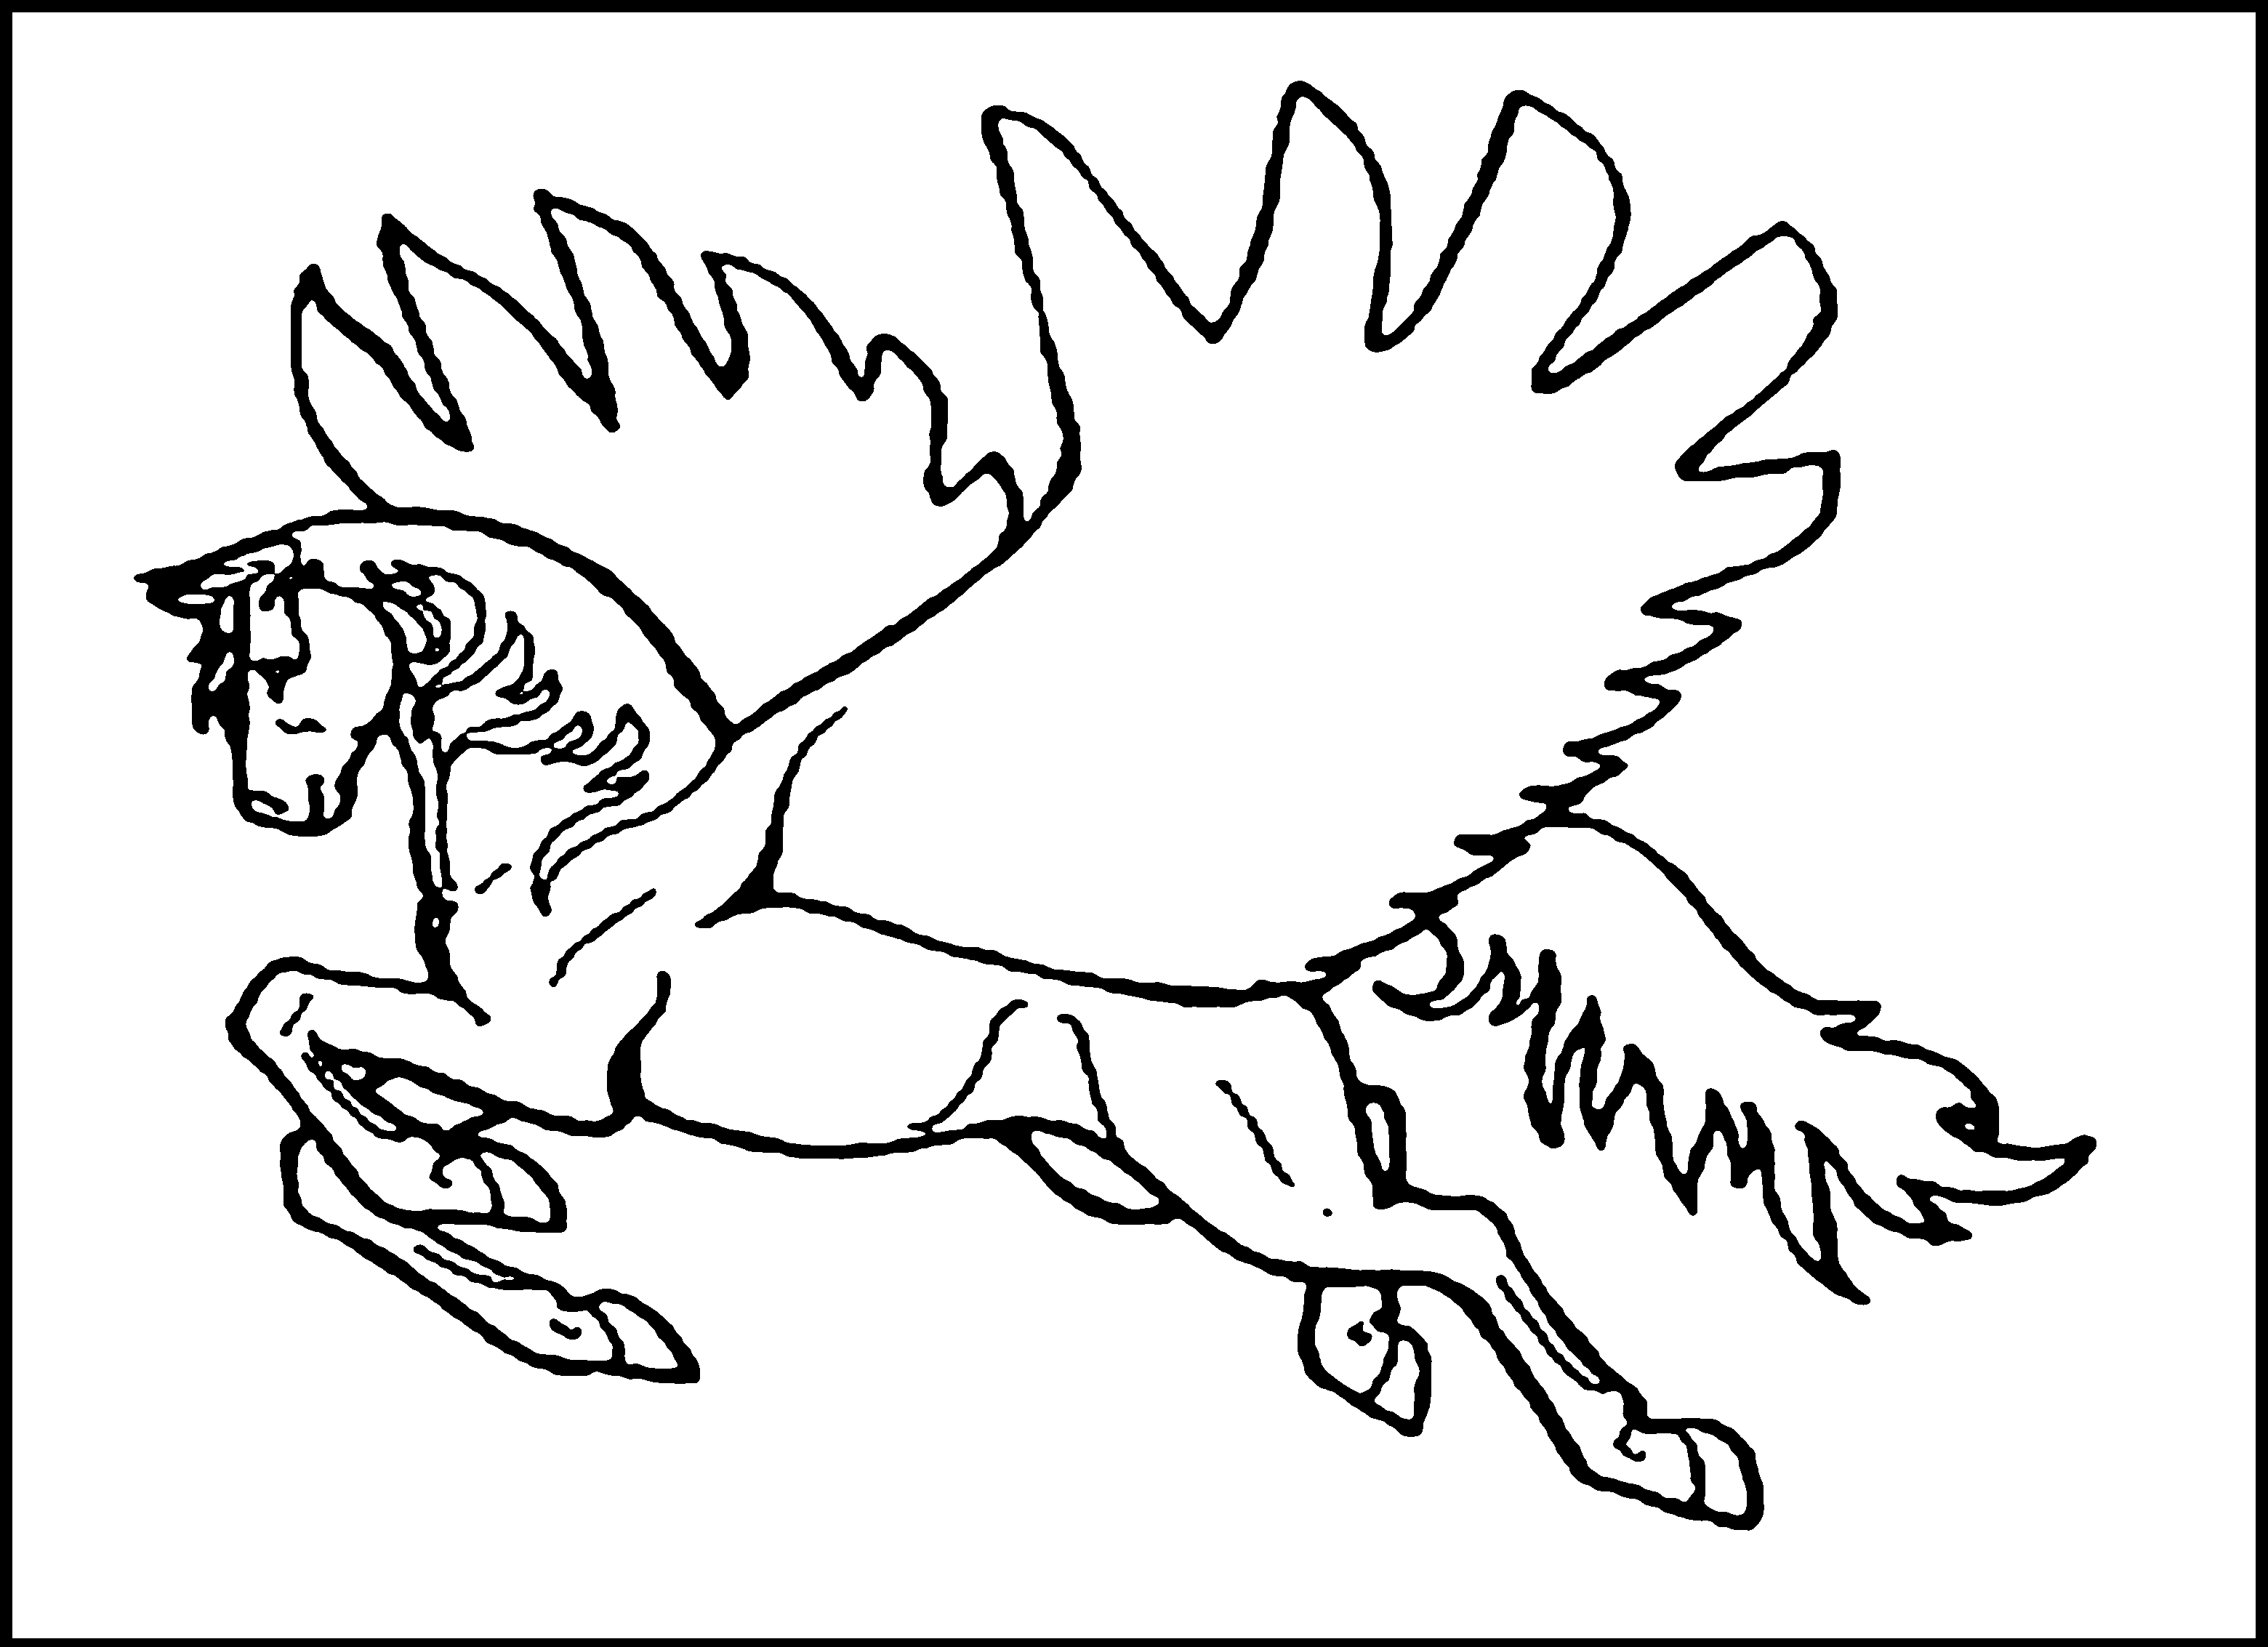 pegasus printable coloring pages - Coloring Page Printable